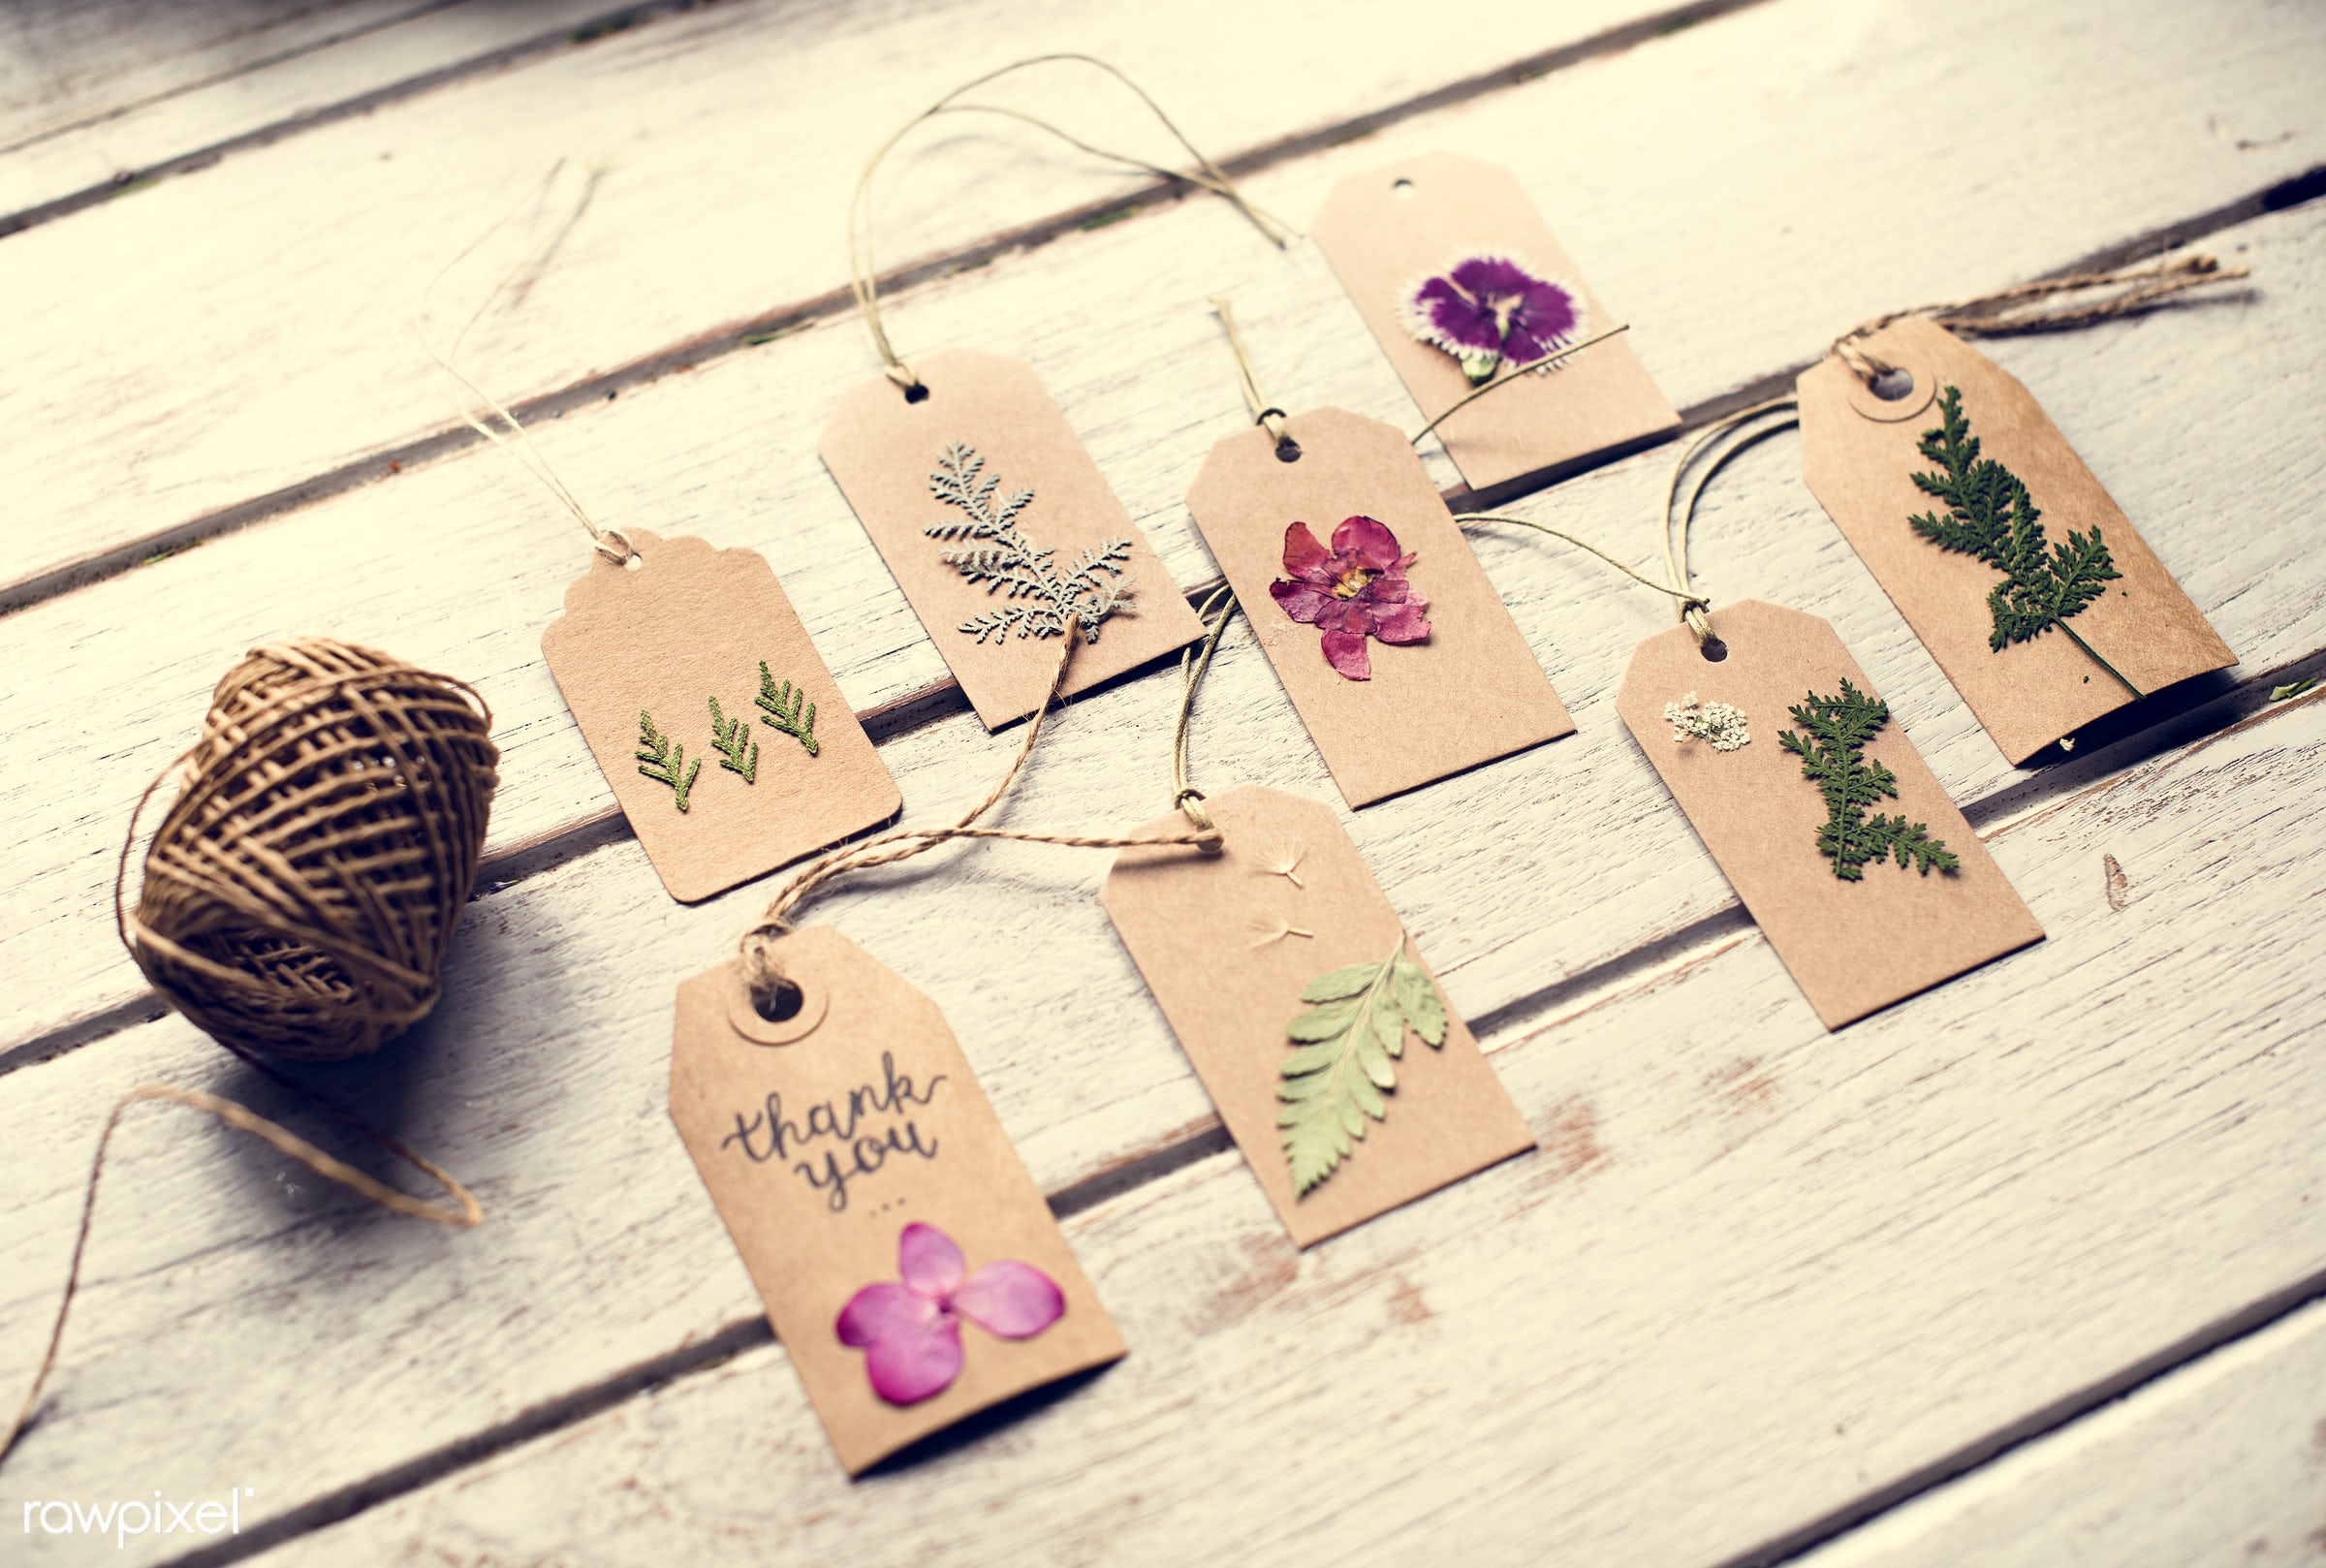 nobody, detail, handicraft, tag, leaf, leaves, decor, roll, dried, nature, flowers, pine, florist, present, arrangement,...